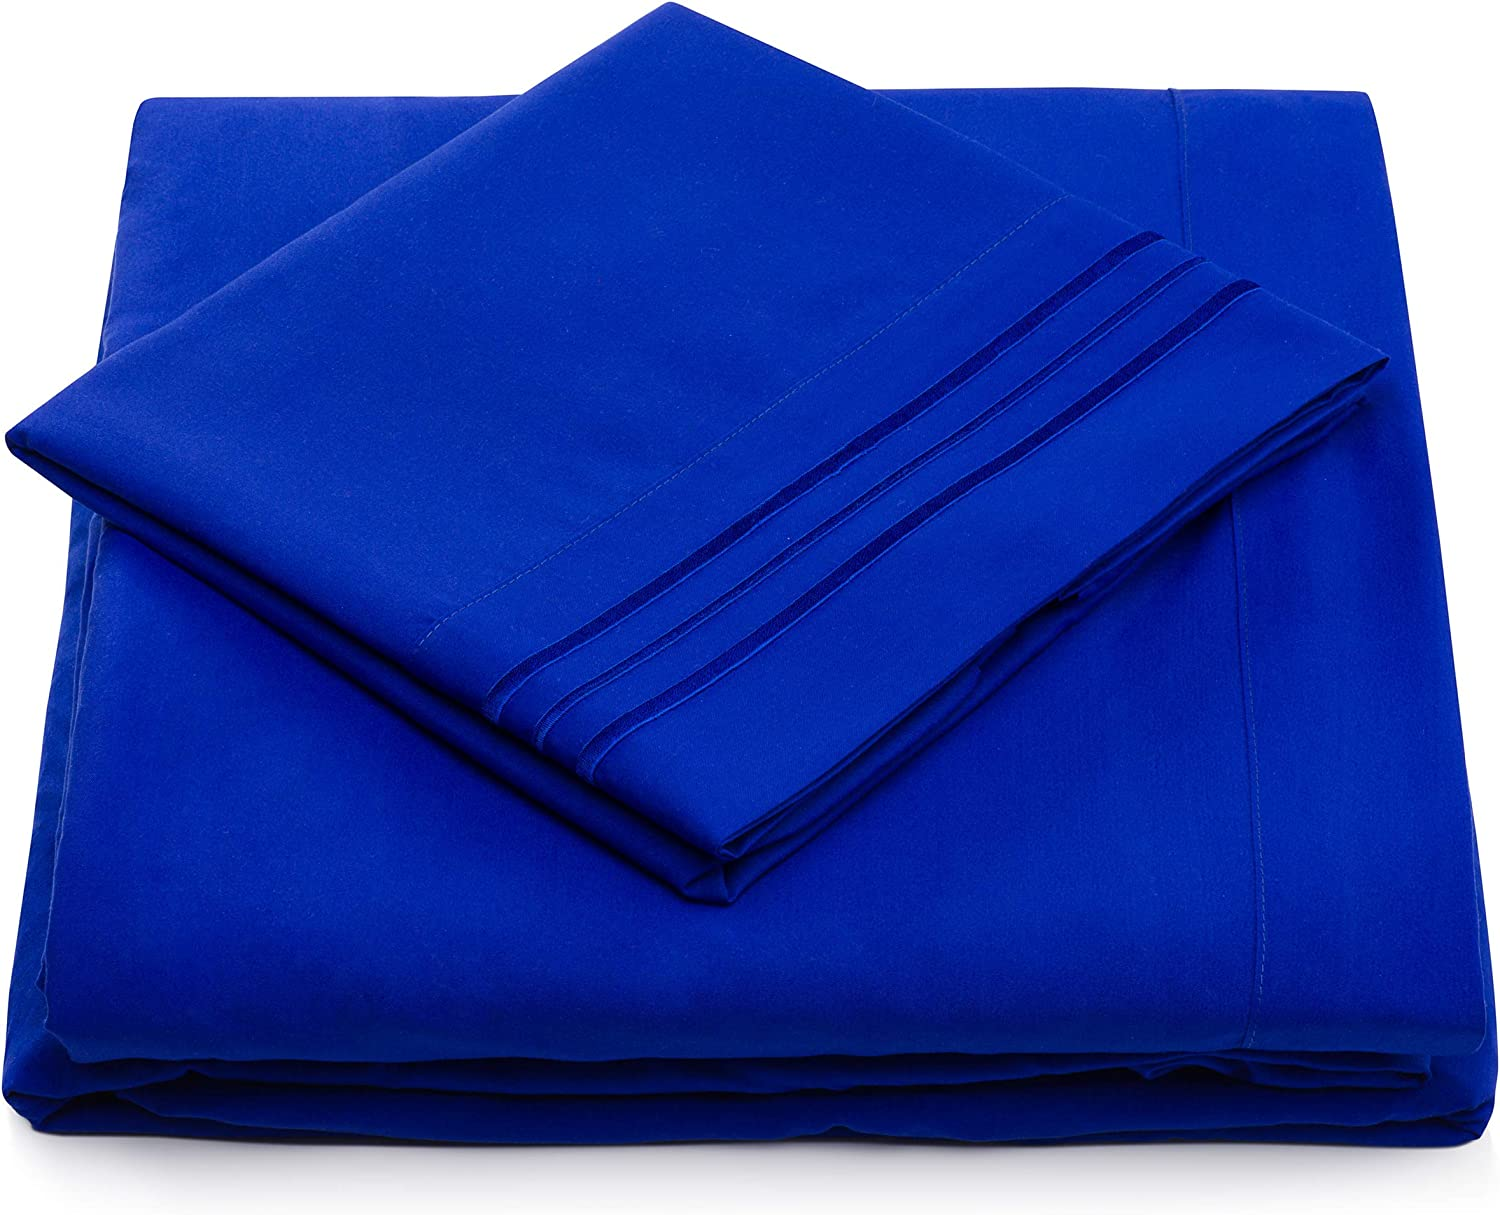 California King Size Bed Sheet Set - Royal Blue Cal King Bedding - Deep Pocket - Extra Soft Luxury Hotel Sheets - Hypoallergenic - Cool & Breathable - Wrinkle, Stain, Fade Resistant - 4 Piece